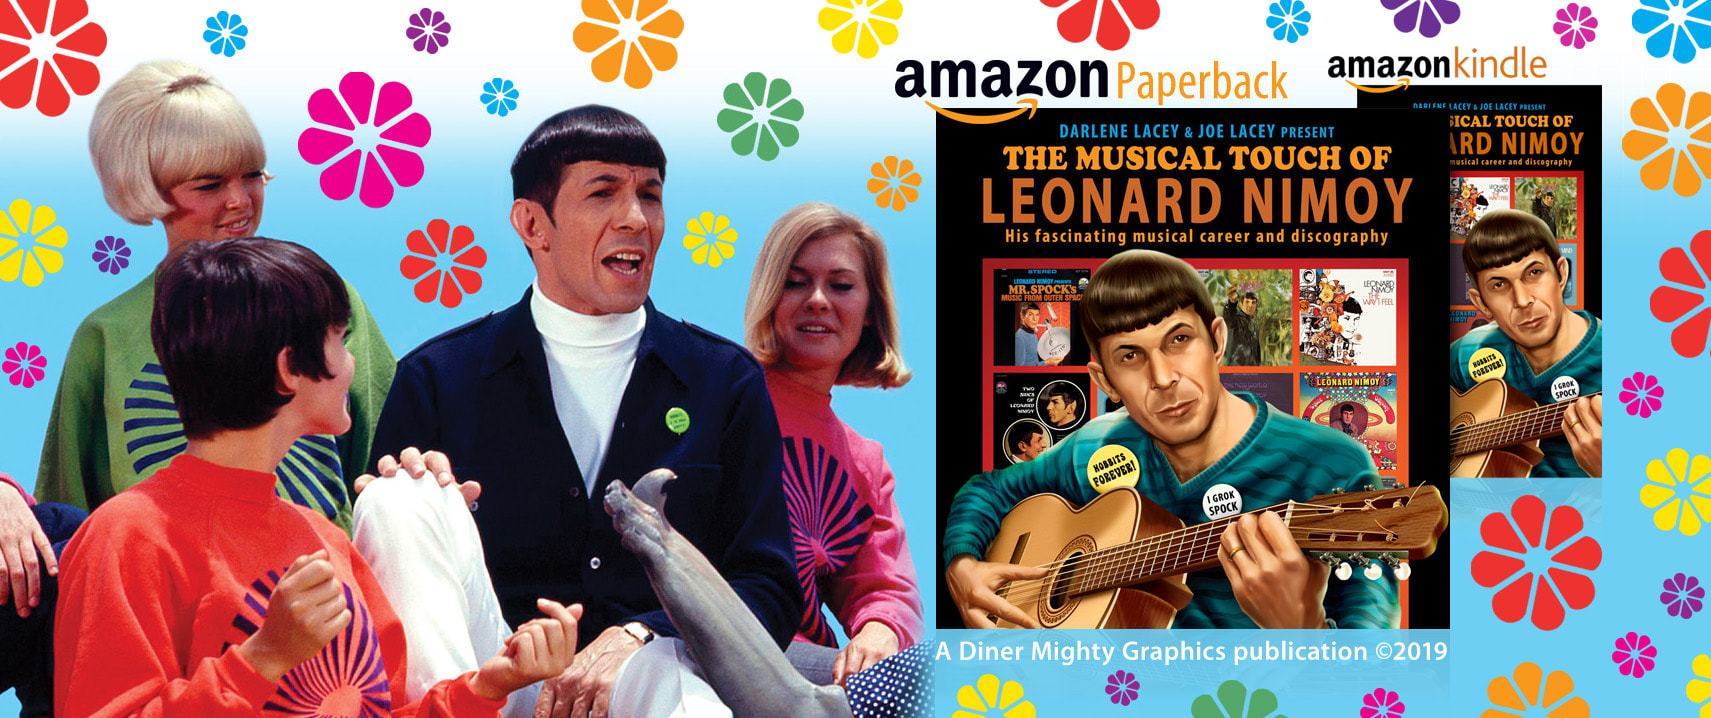 The Musical Touch of Leonard Nimoy: His fascinating musical career and discography book by Darlene Lacey and Joe Lacey